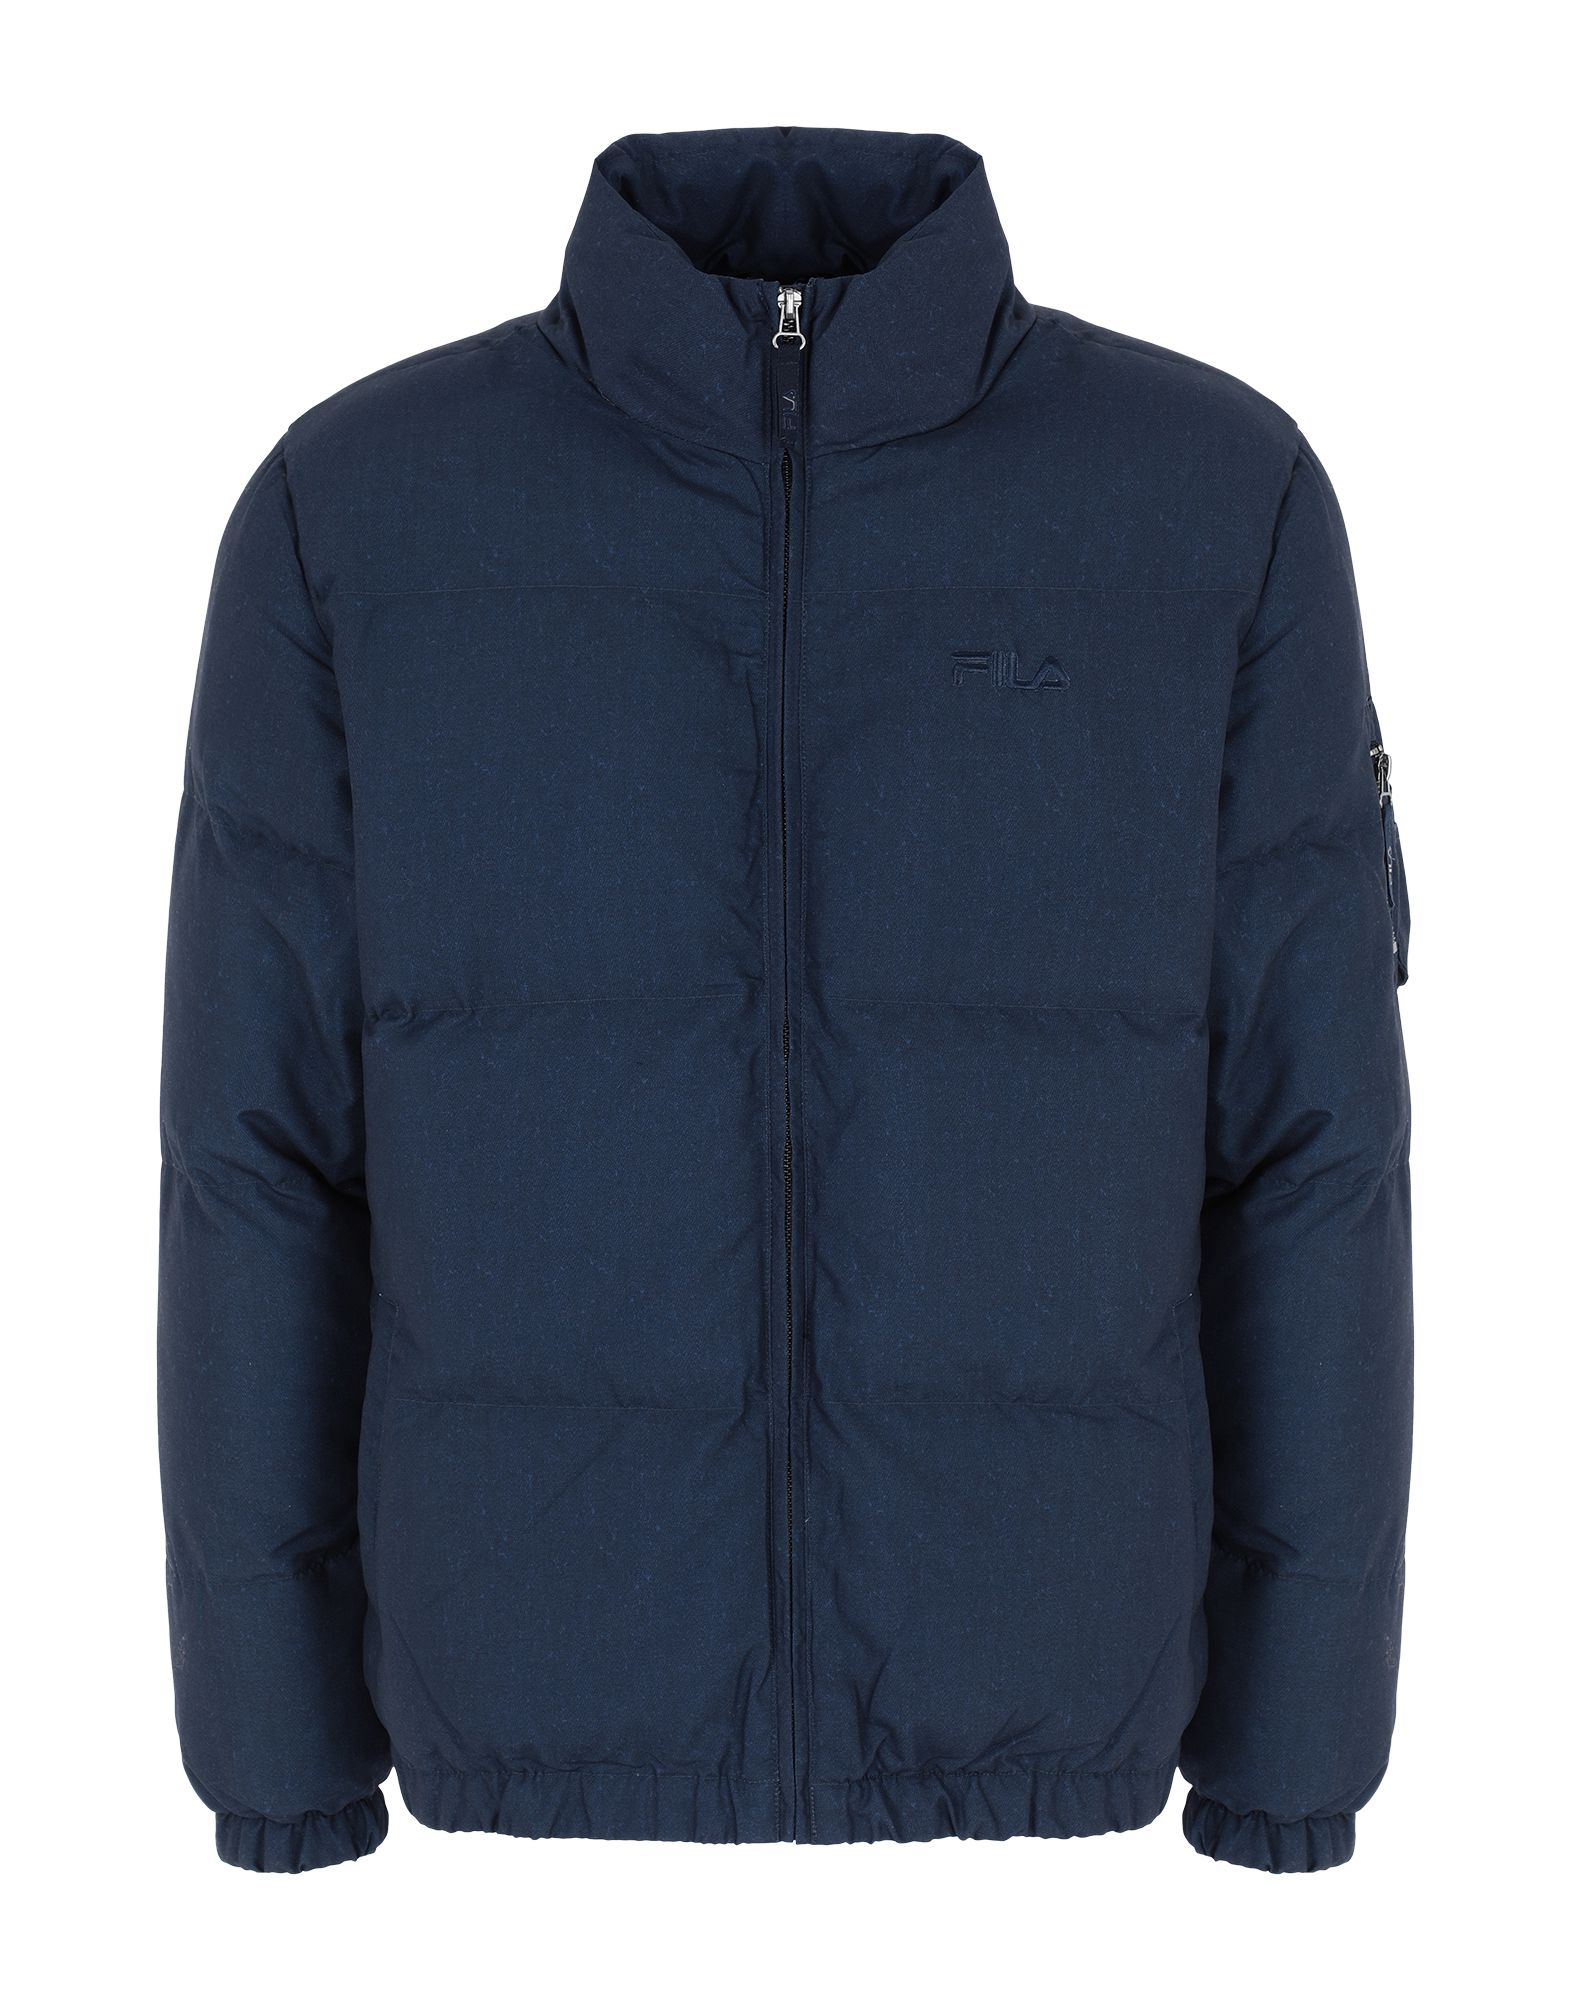 FILA HERITAGE Synthetic Down Jackets - Item 41934735